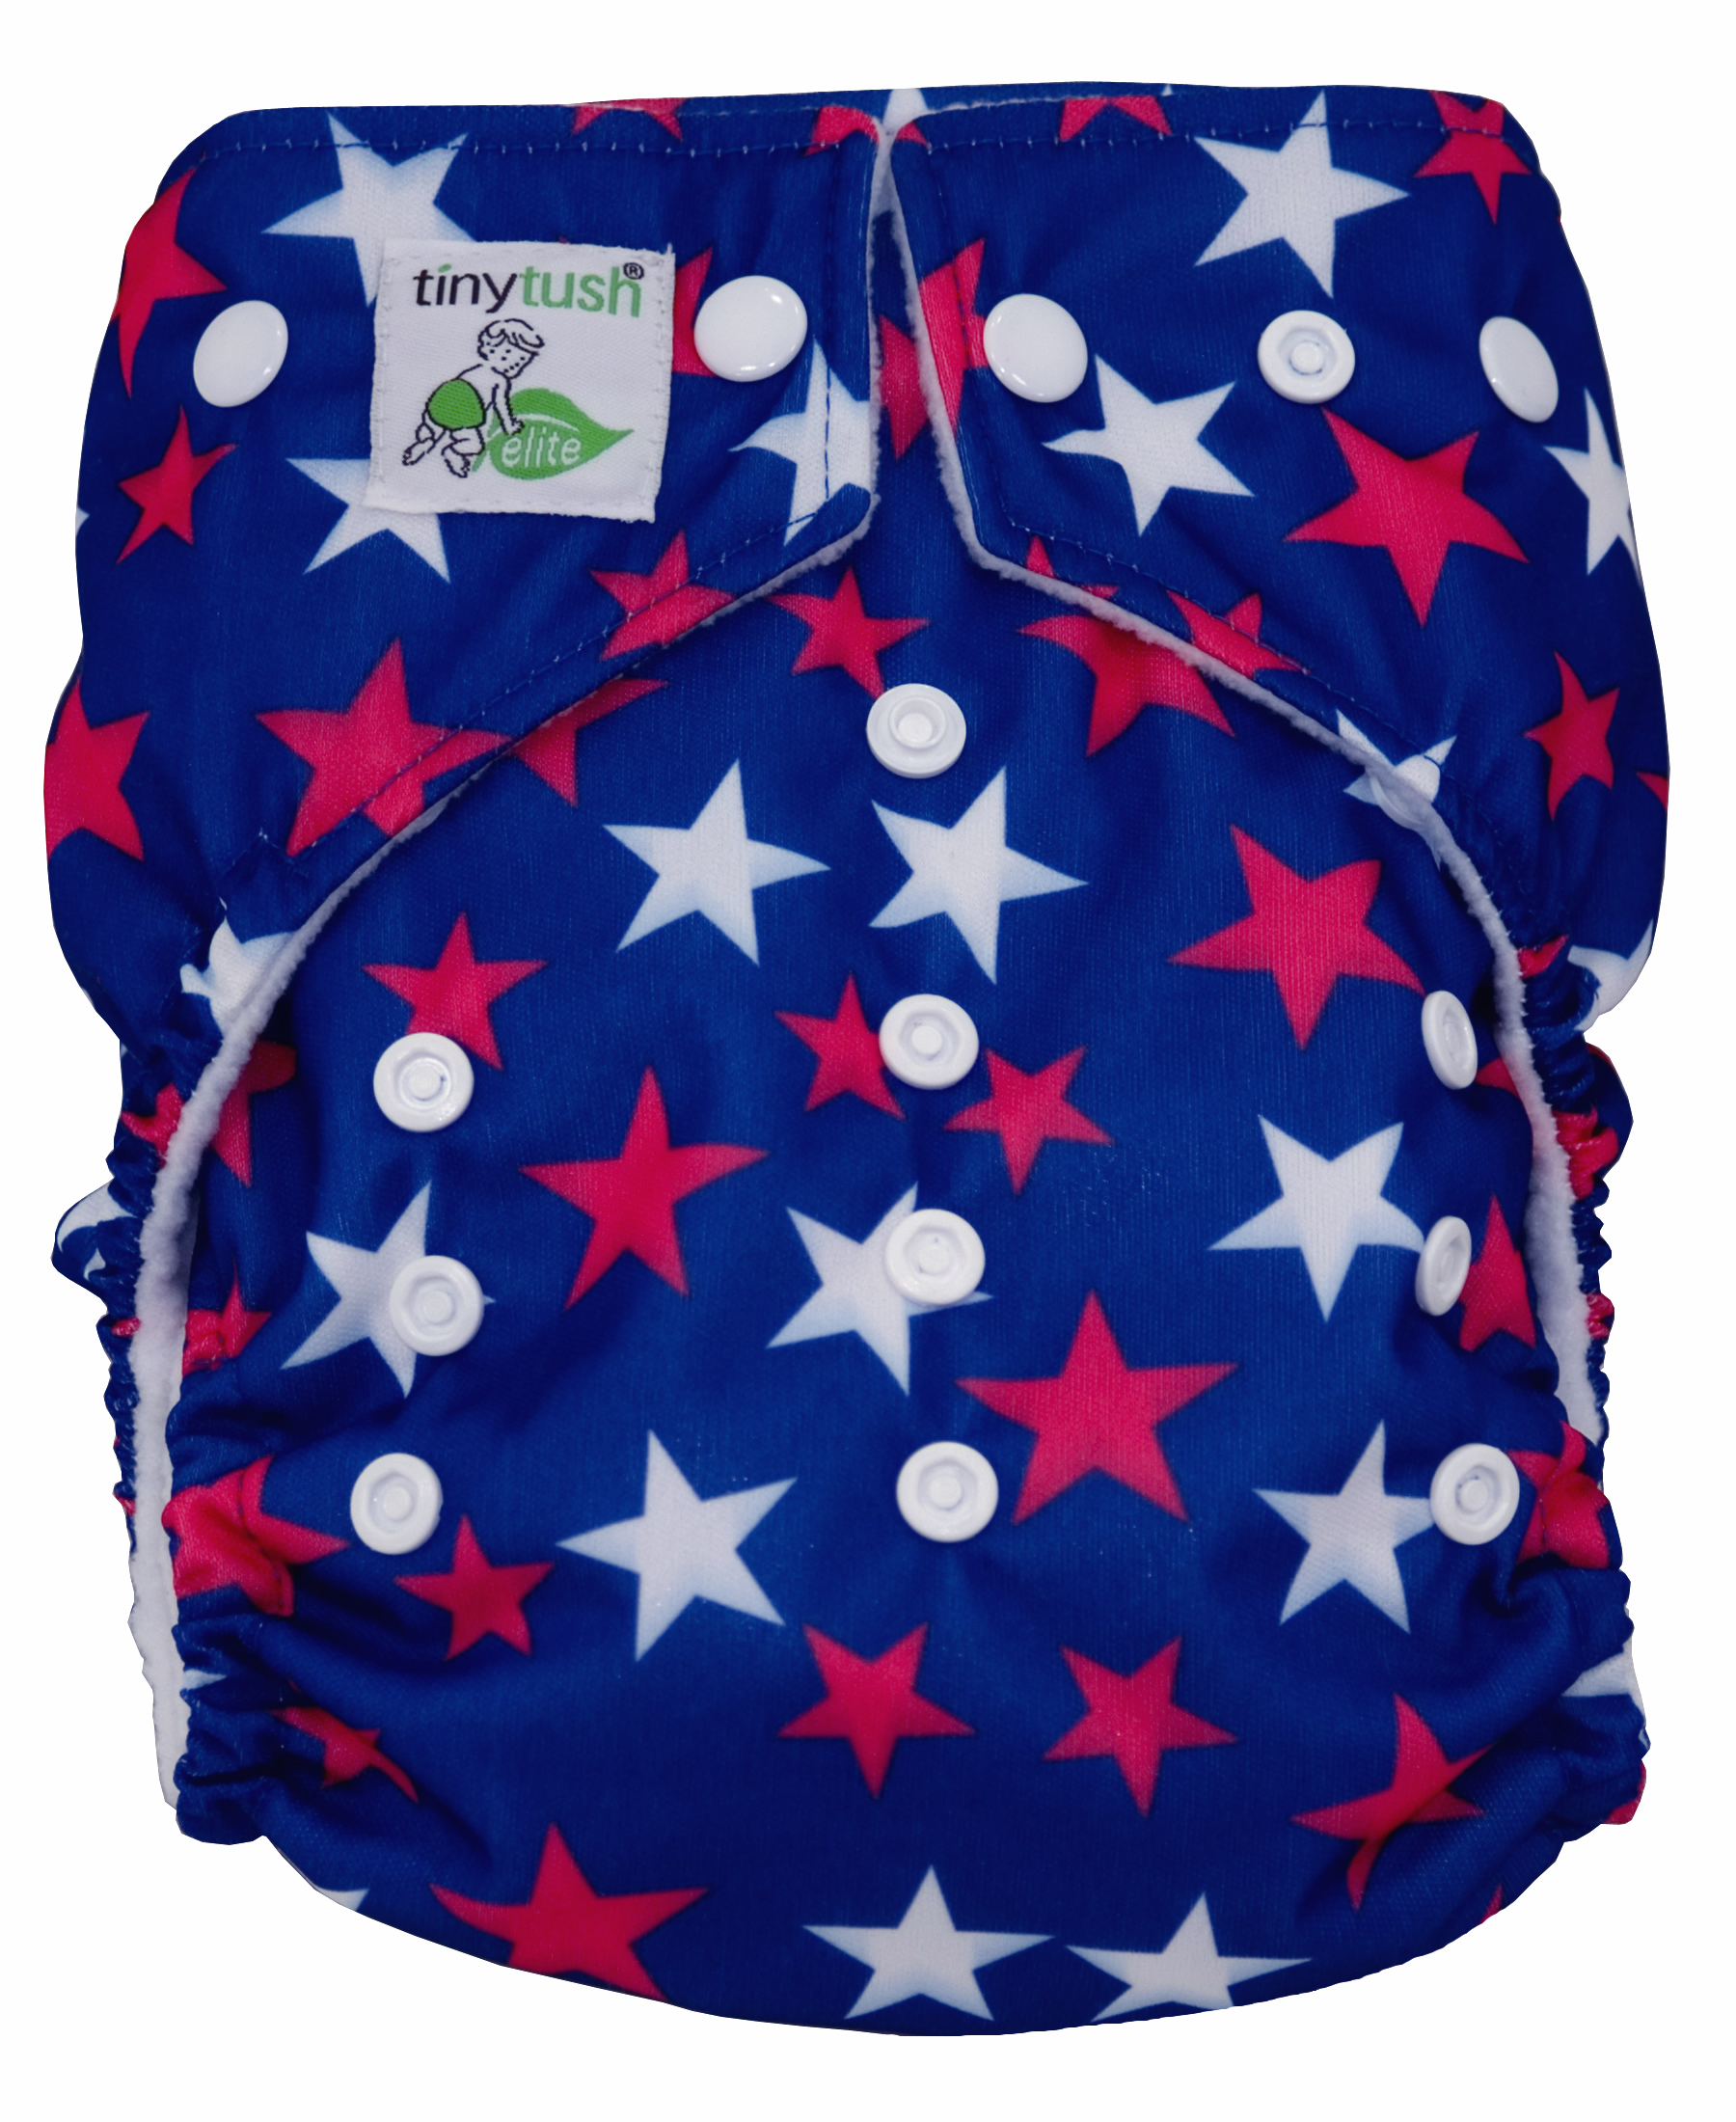 Star Spangled Snap One Size Pocket Diaper